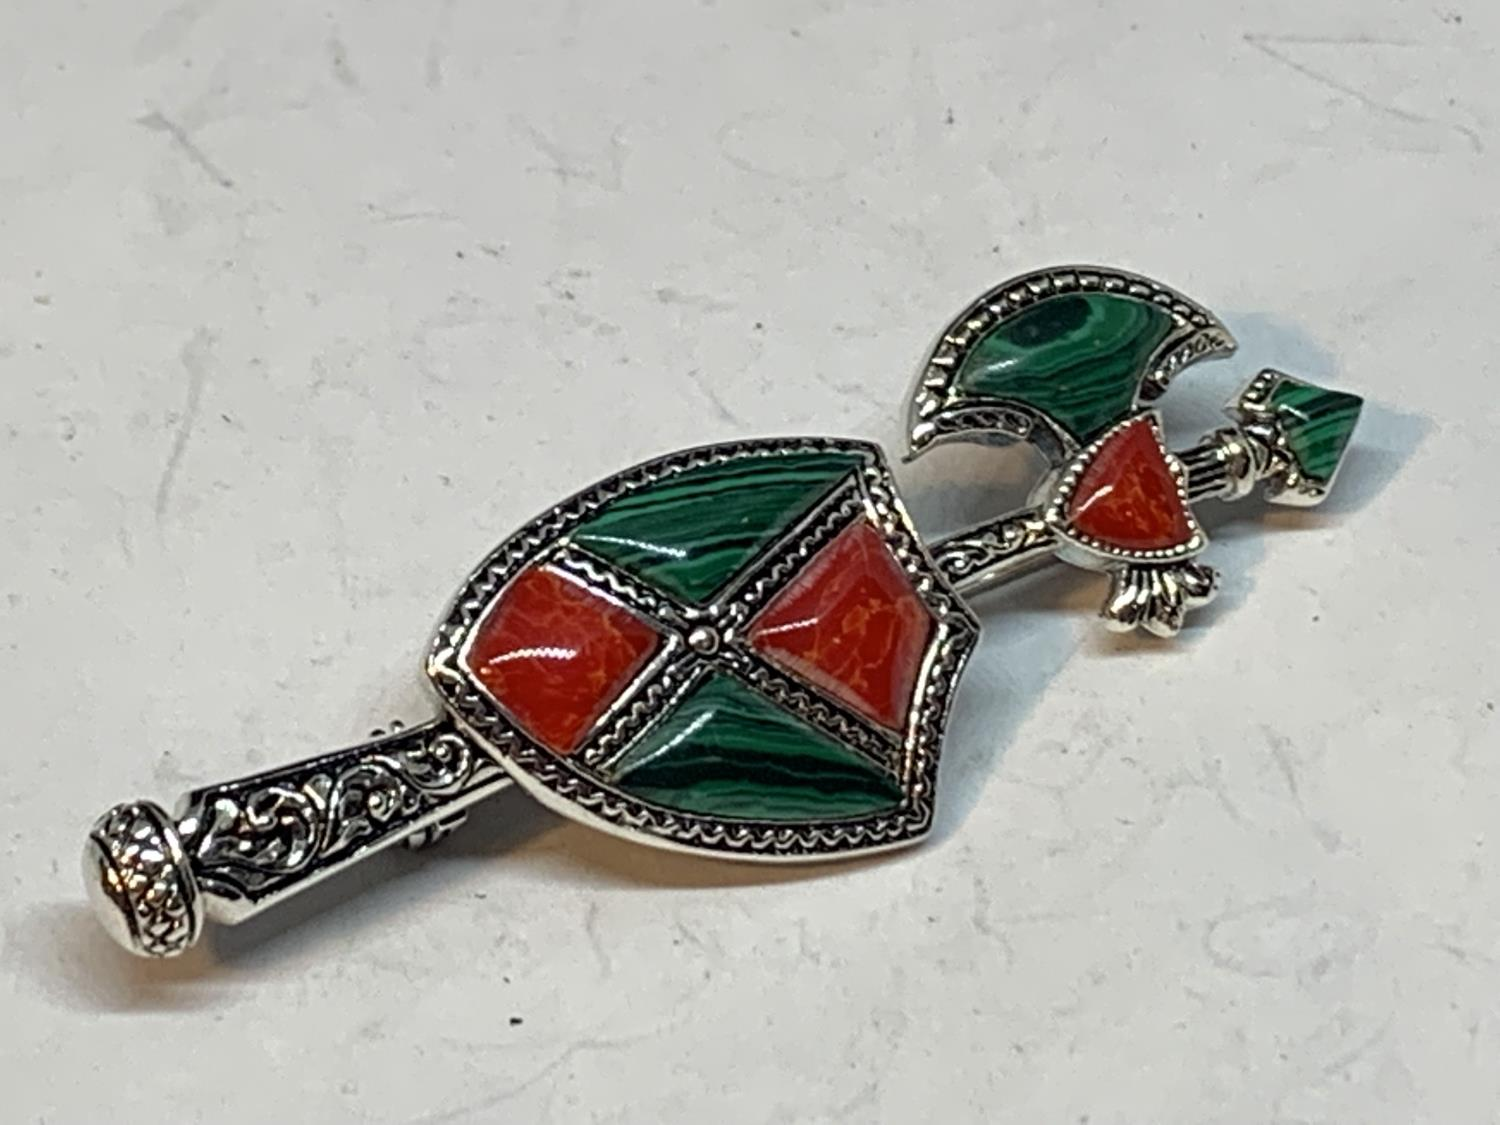 A SILVER BROOCH WITH GREEN AND RED ENAMEL AXE AND SHIELD DESIGN